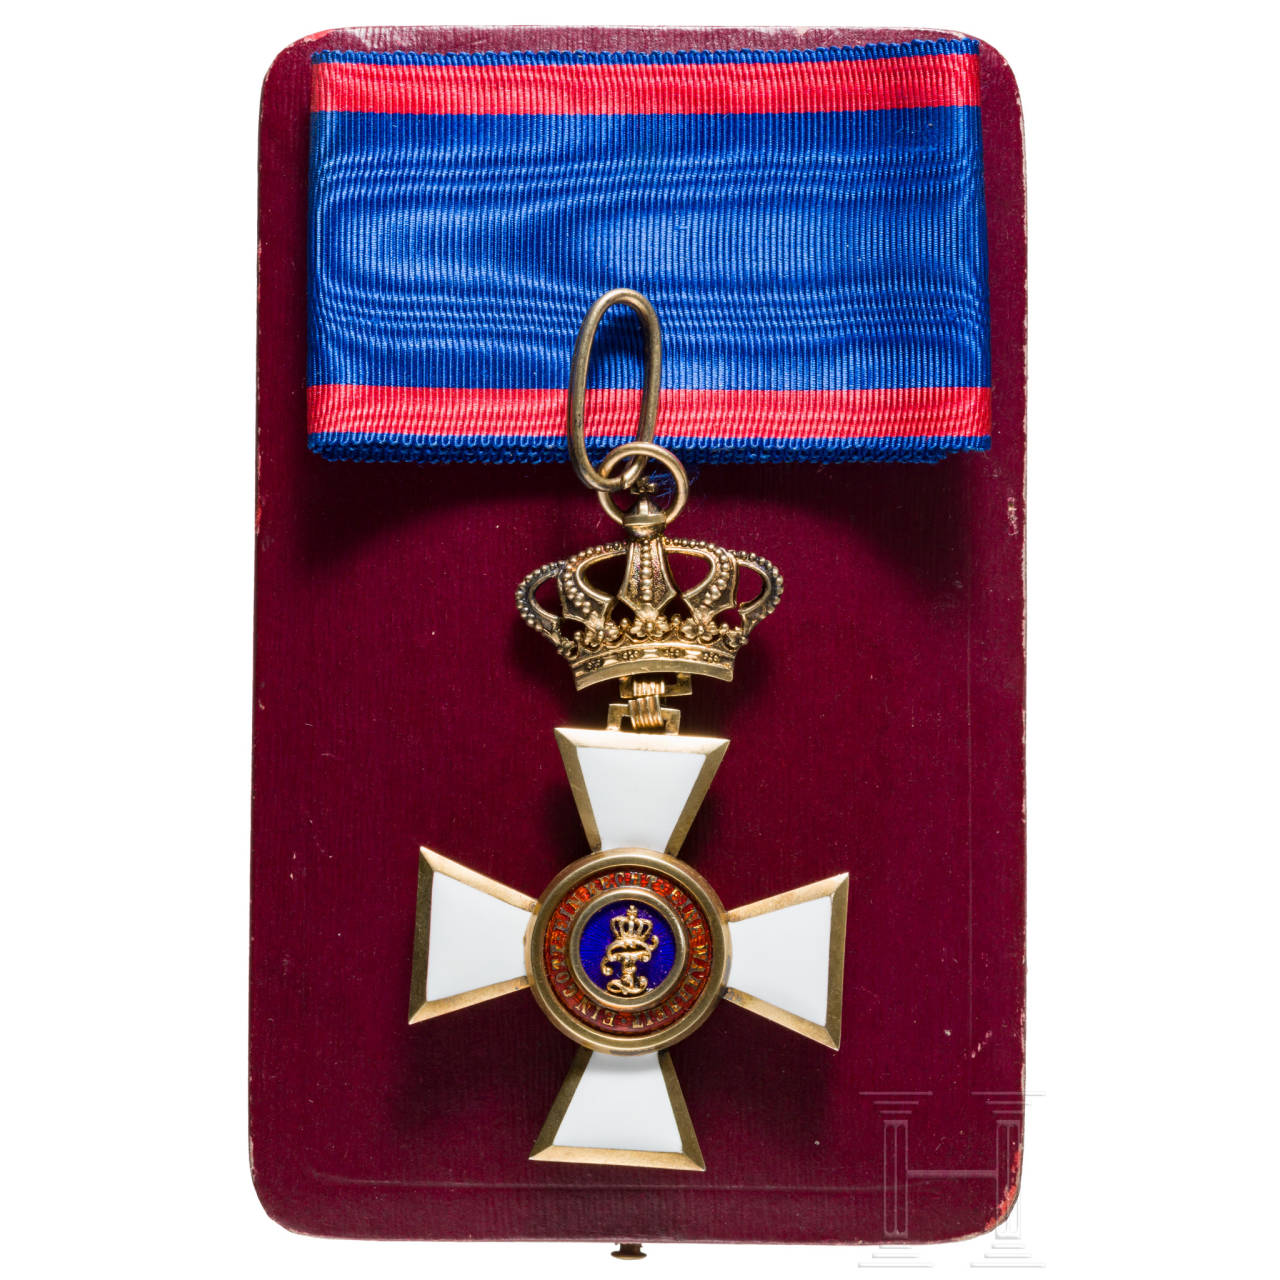 Order of Merit of Duke Peter Friedrich Ludwig, Commander's Cross, awarded 1839 to 1918